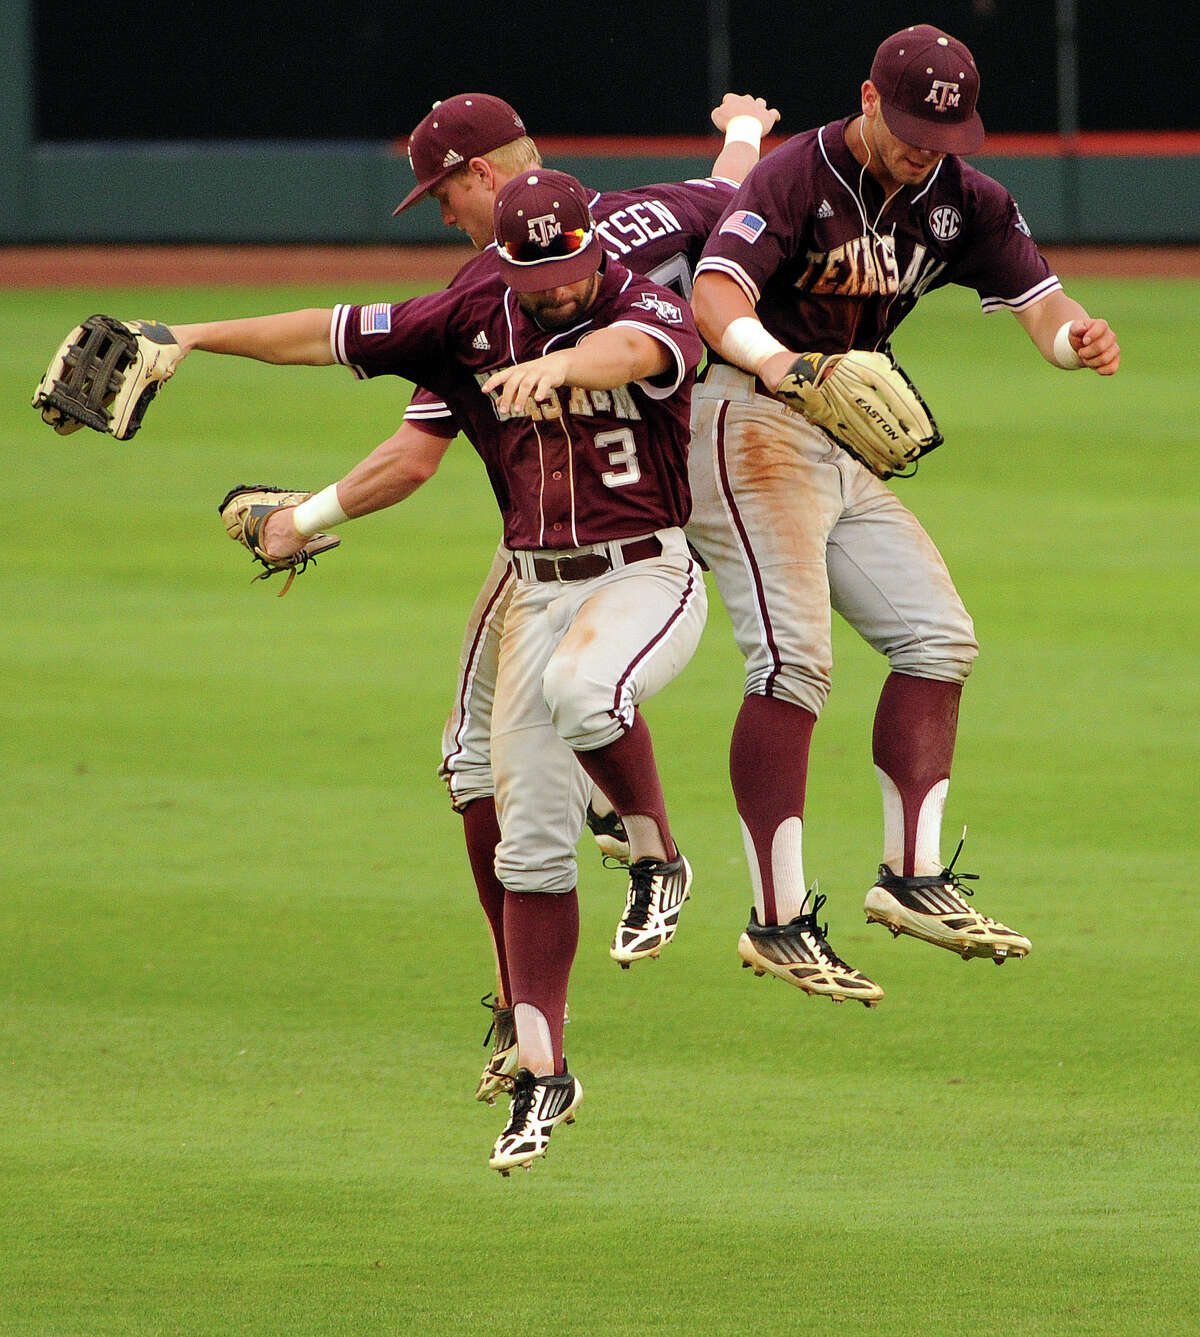 Texas A&M outfielders Jace Statum,front left, Krey Bratsen and Nick Banks, right, celebrate the Aggies' 7-3 victory over George Mason in an NCAA college baseball tournament regional game, Saturday, May 31, 2014, at Reckling Park in Houston. (AP Photo/Houston Chronicle, Eric Christian Smith) MANDATORY CREDIT